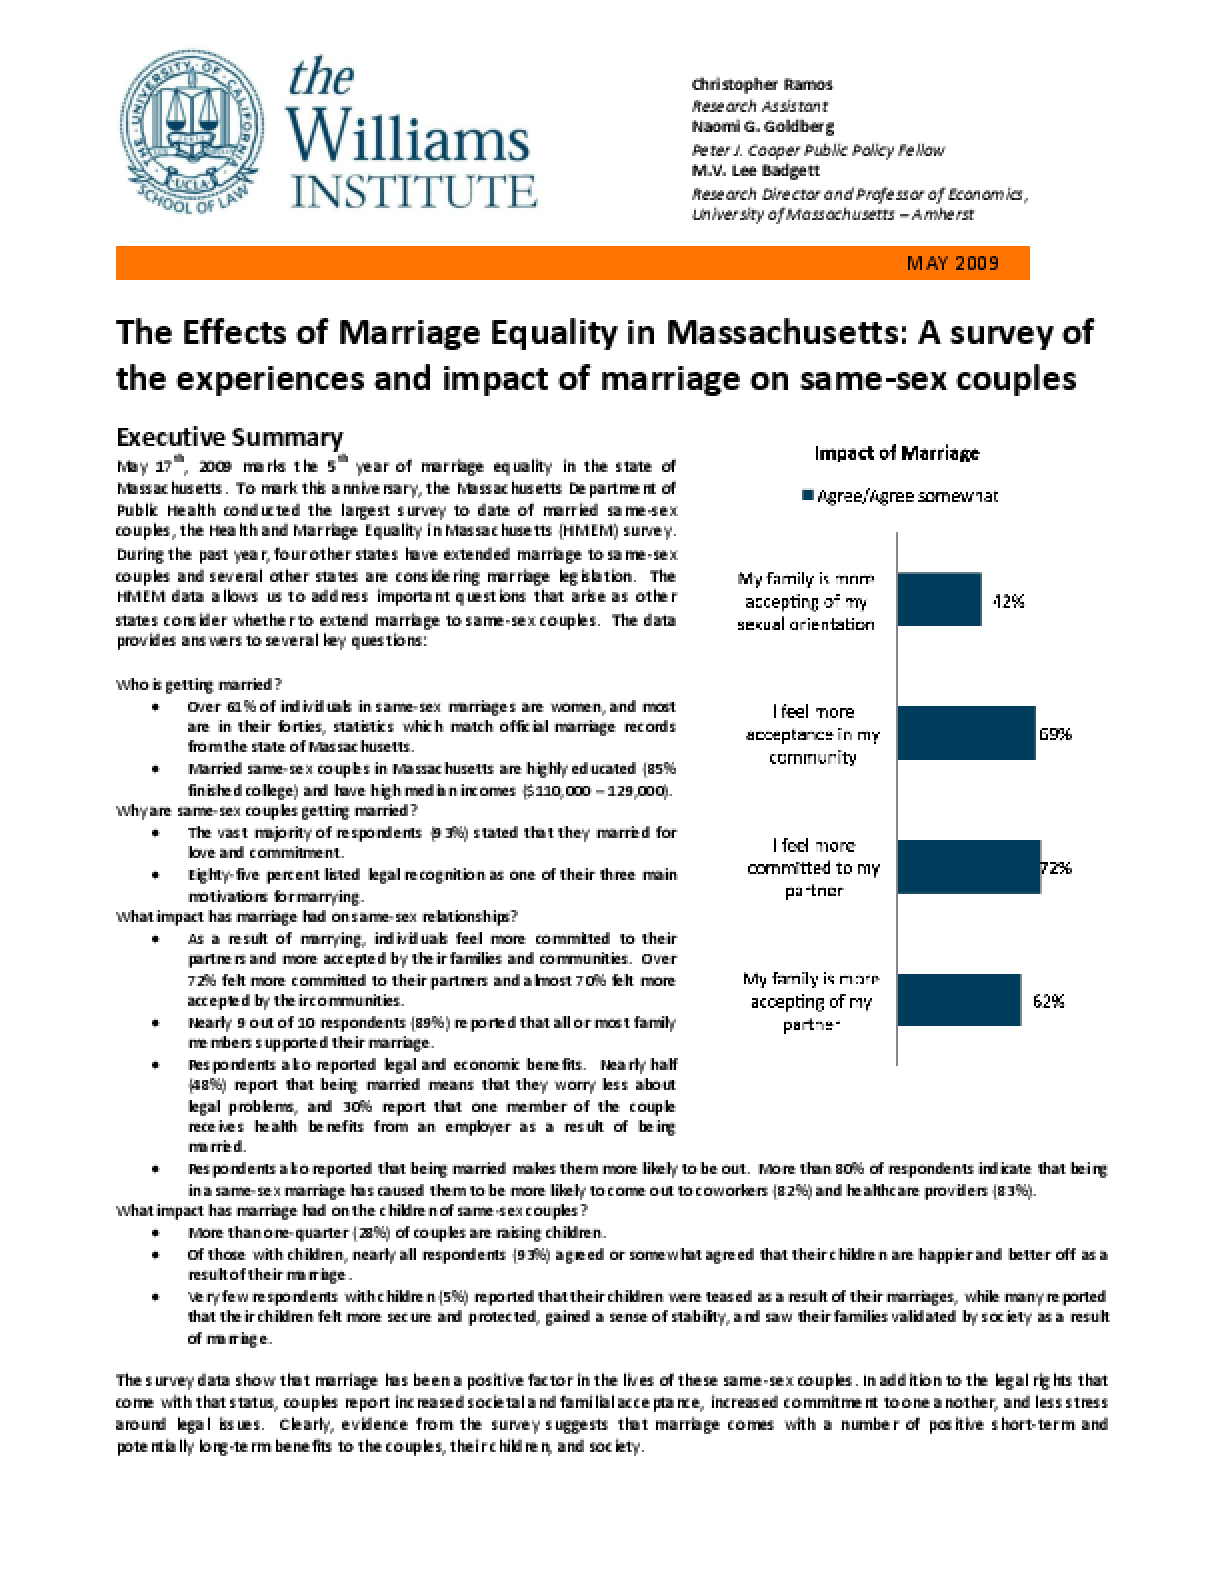 The Effects of Marriage Equality in Massachusetts: A survey of the experiences and impact of marriage on same-sex couples